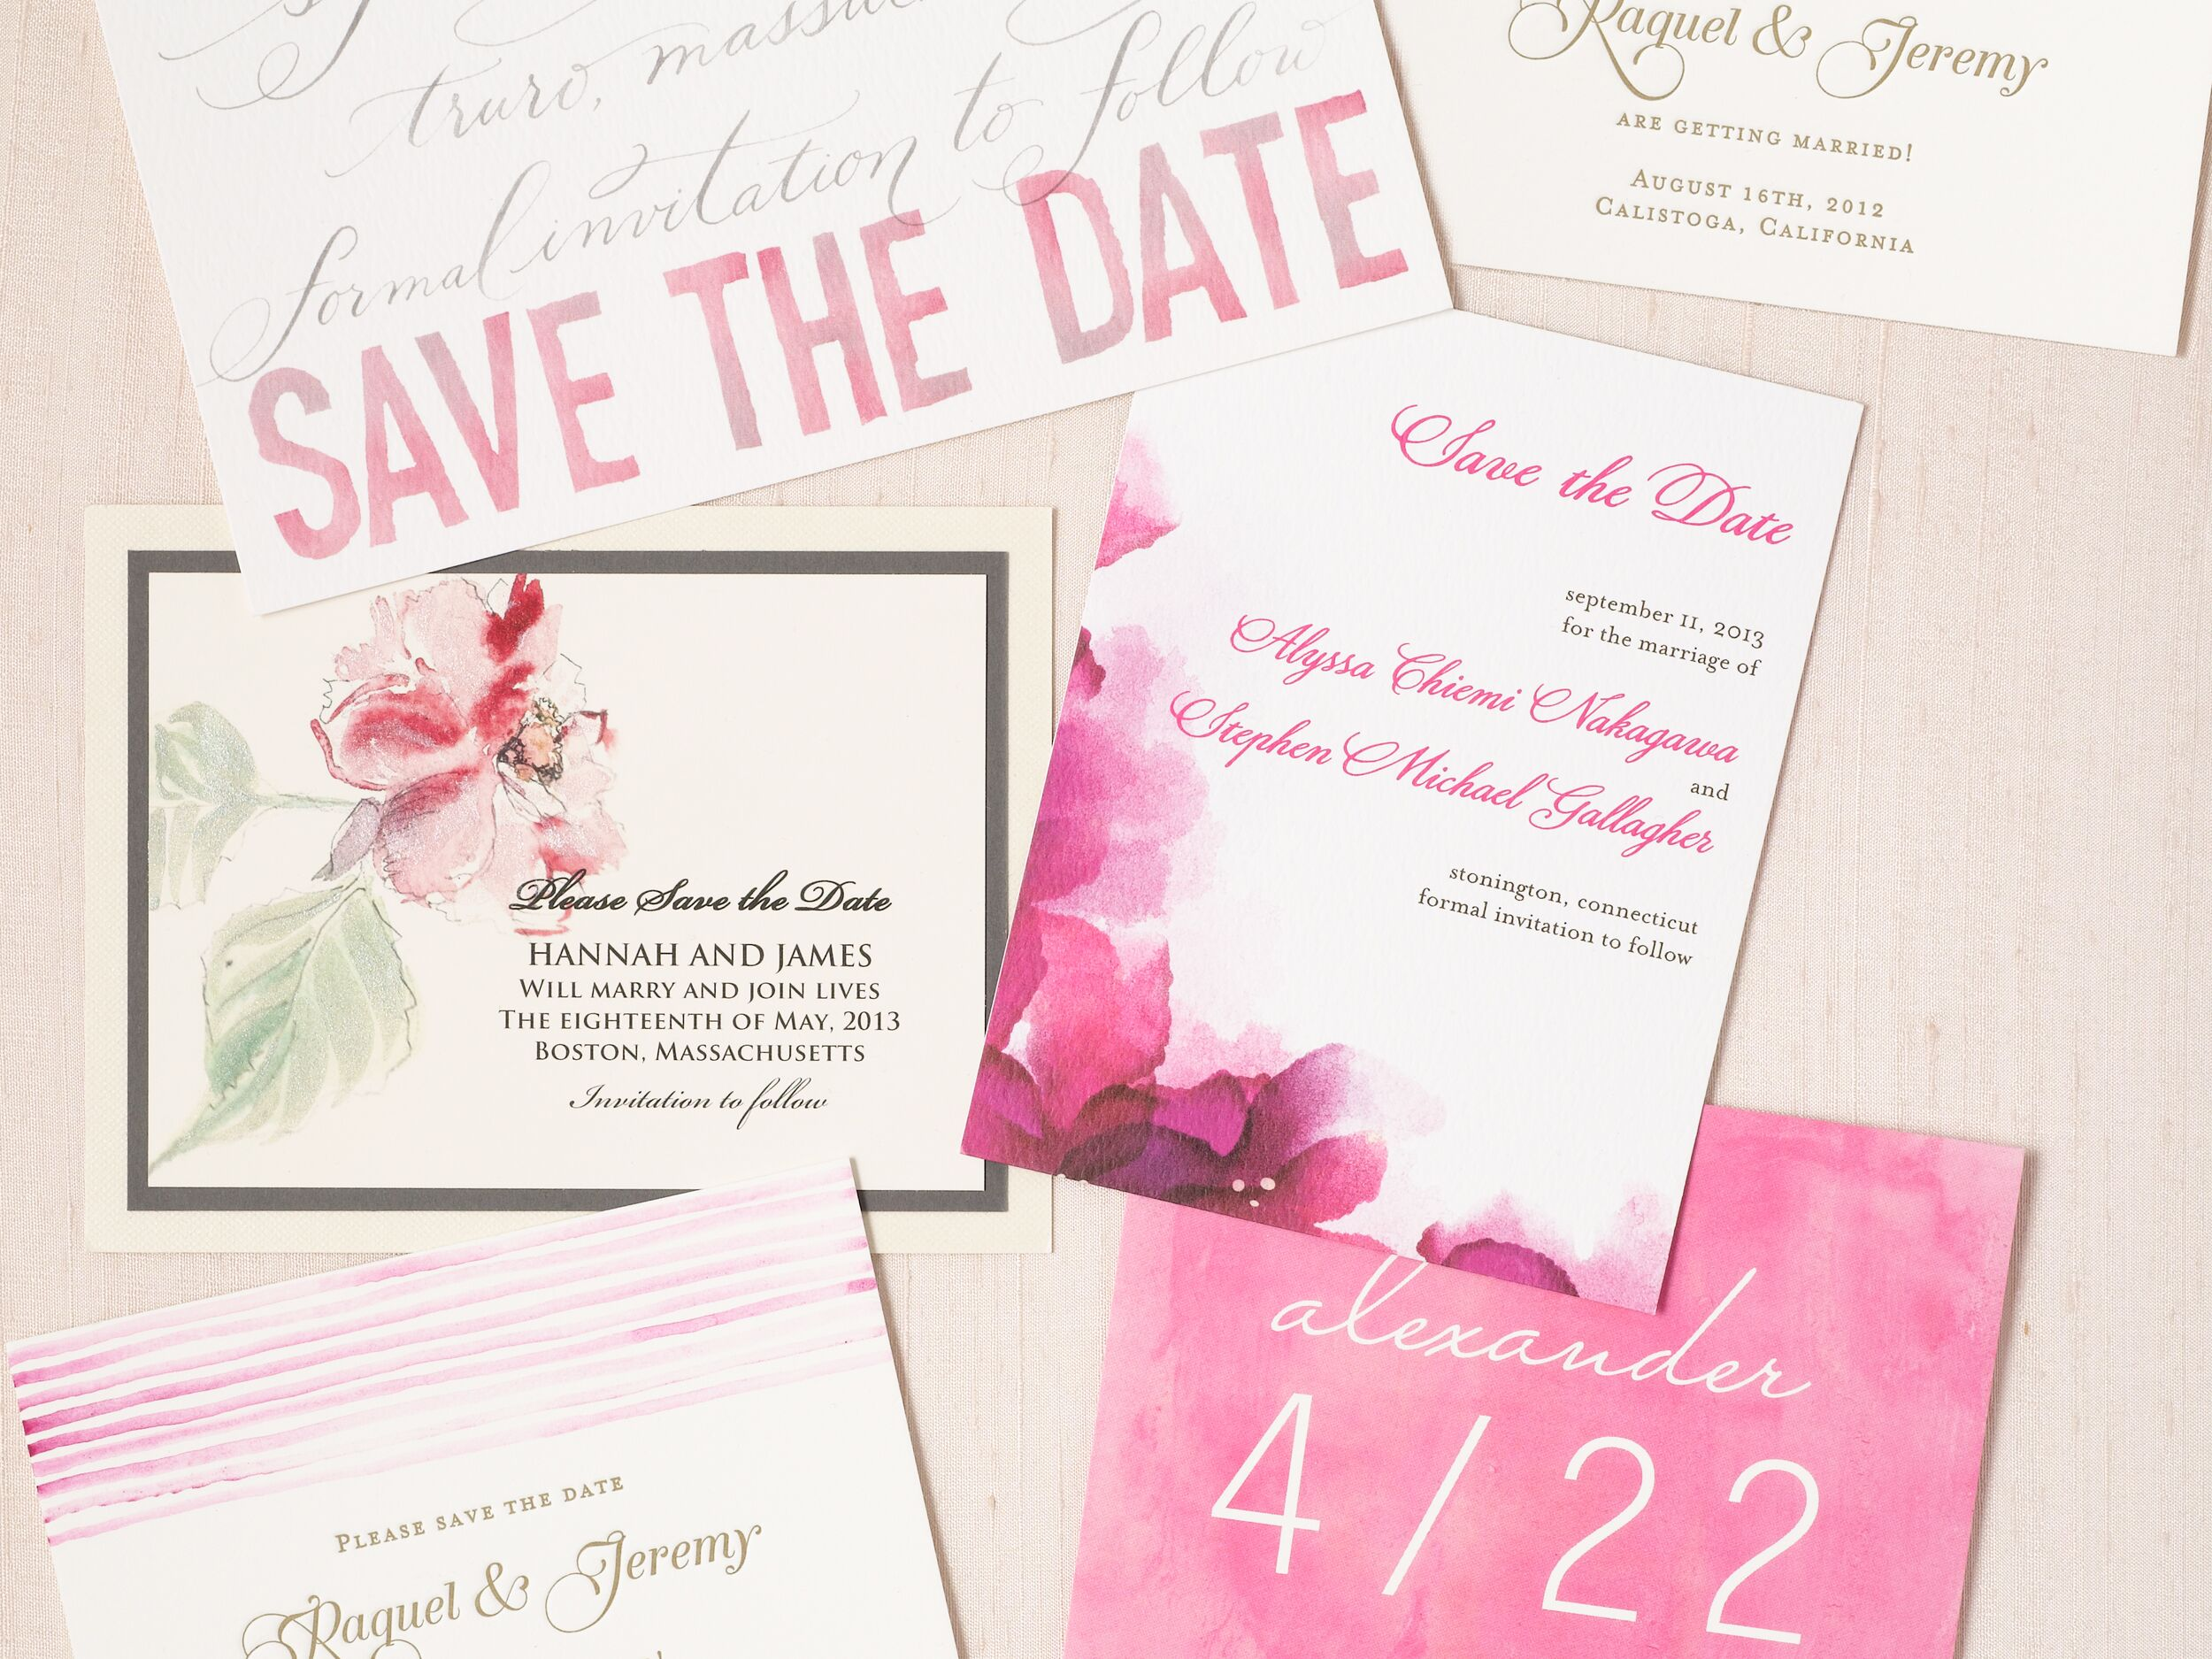 SavetheDate Etiquette Tips SavetheDate Mistakes Not to Make